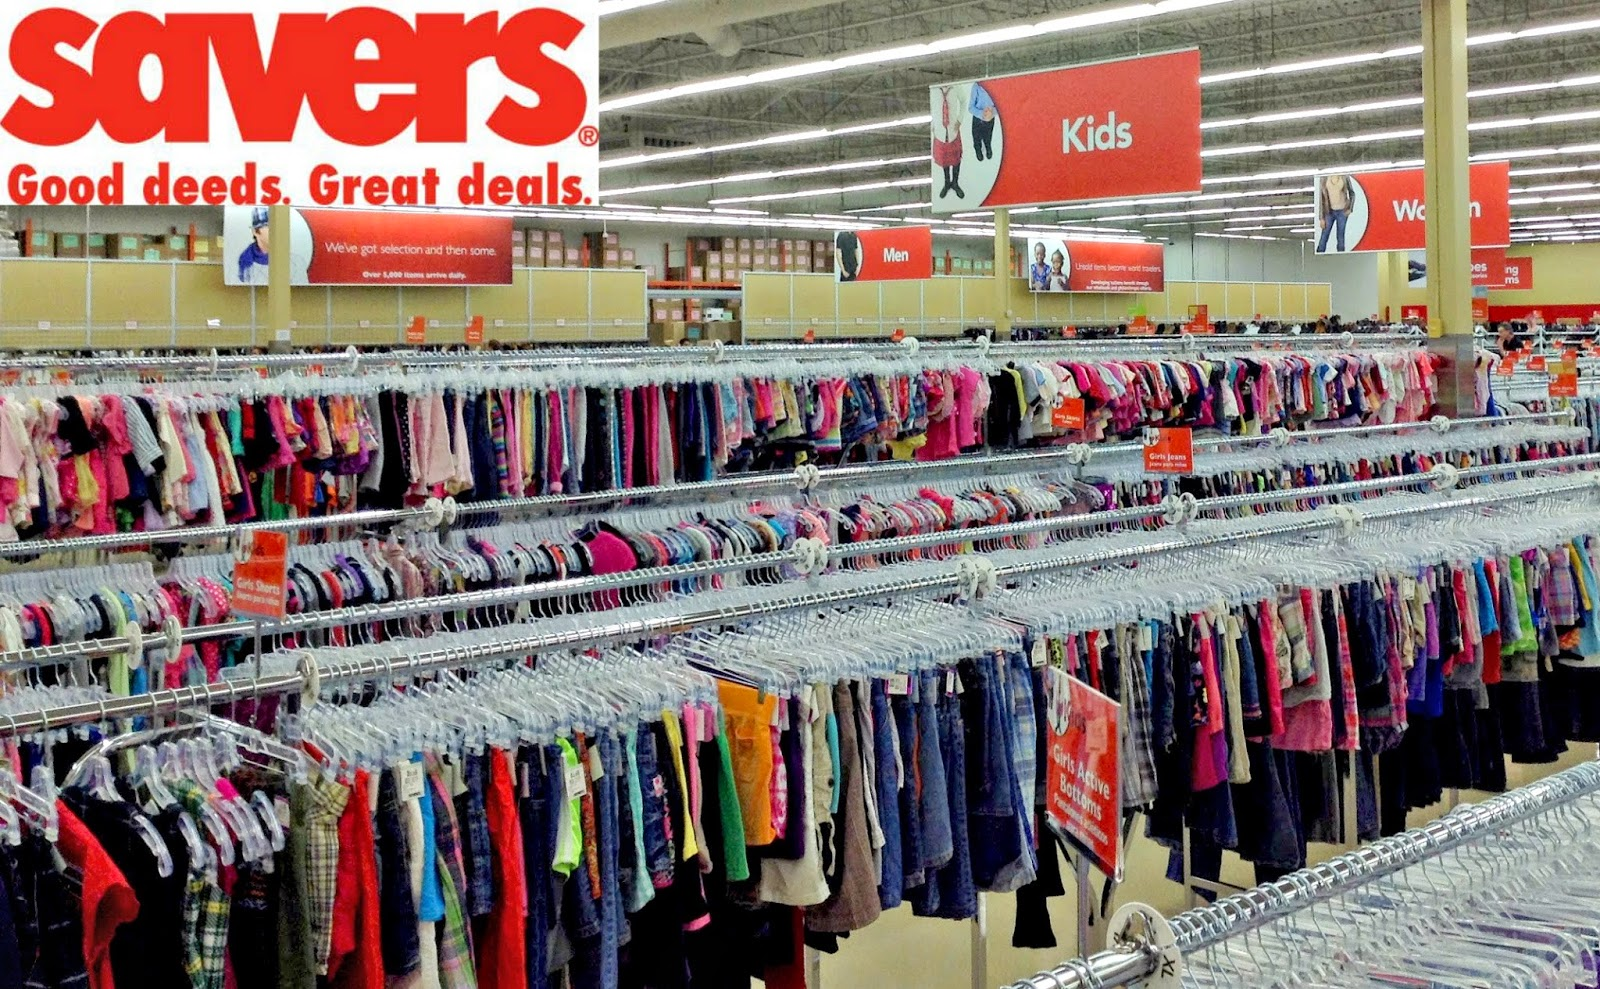 Enter to win $50 to Savers!